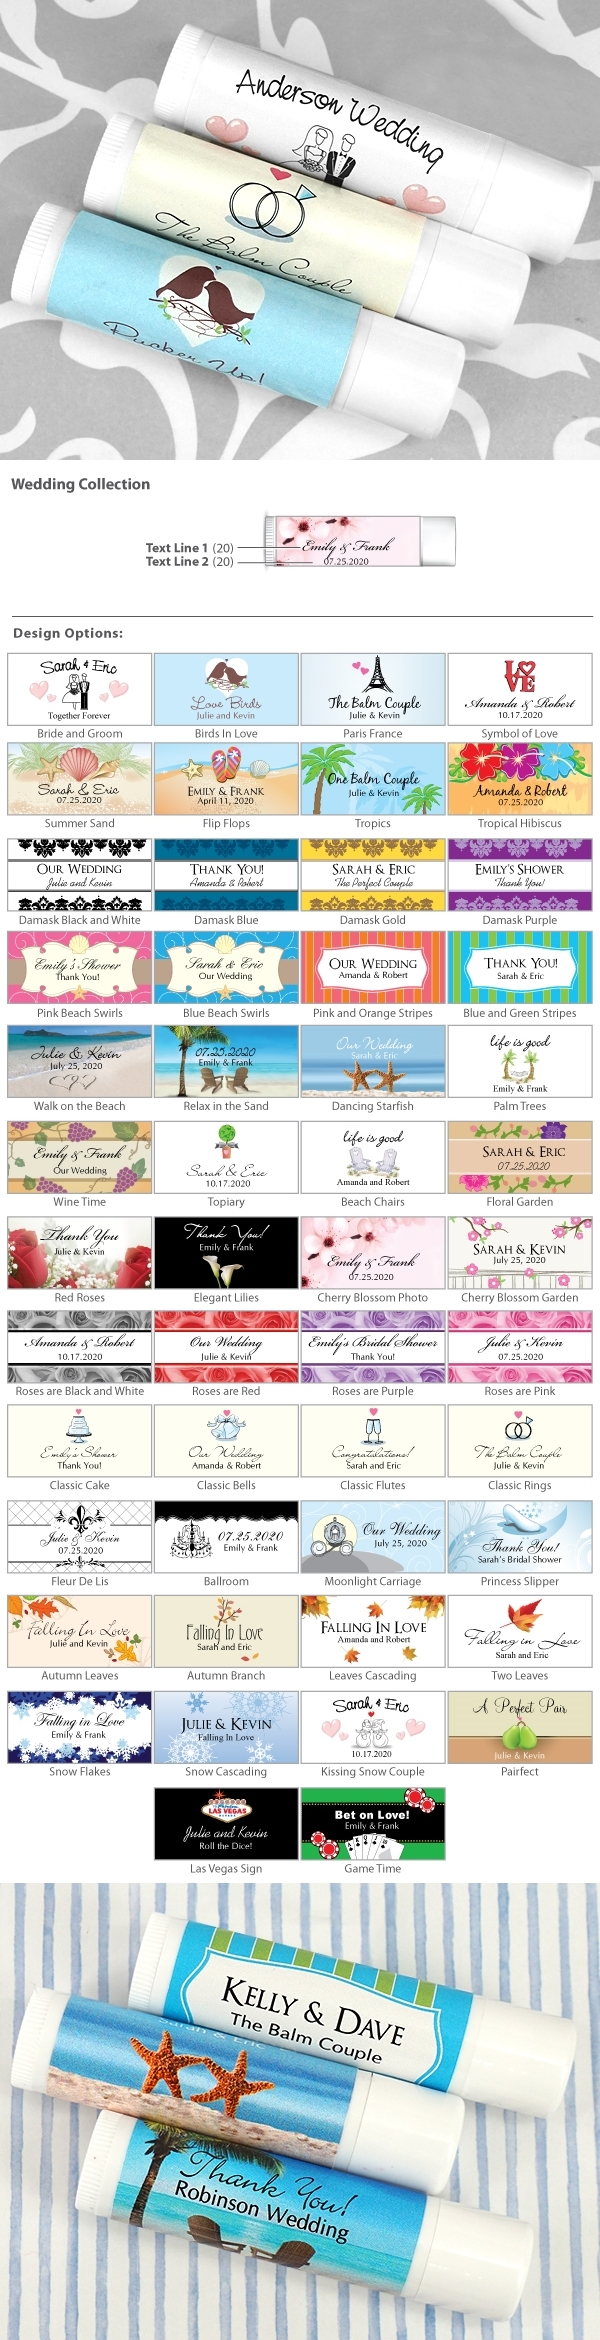 Ducky Days Personalized Lip Balm in White Tube (Wedding Designs)